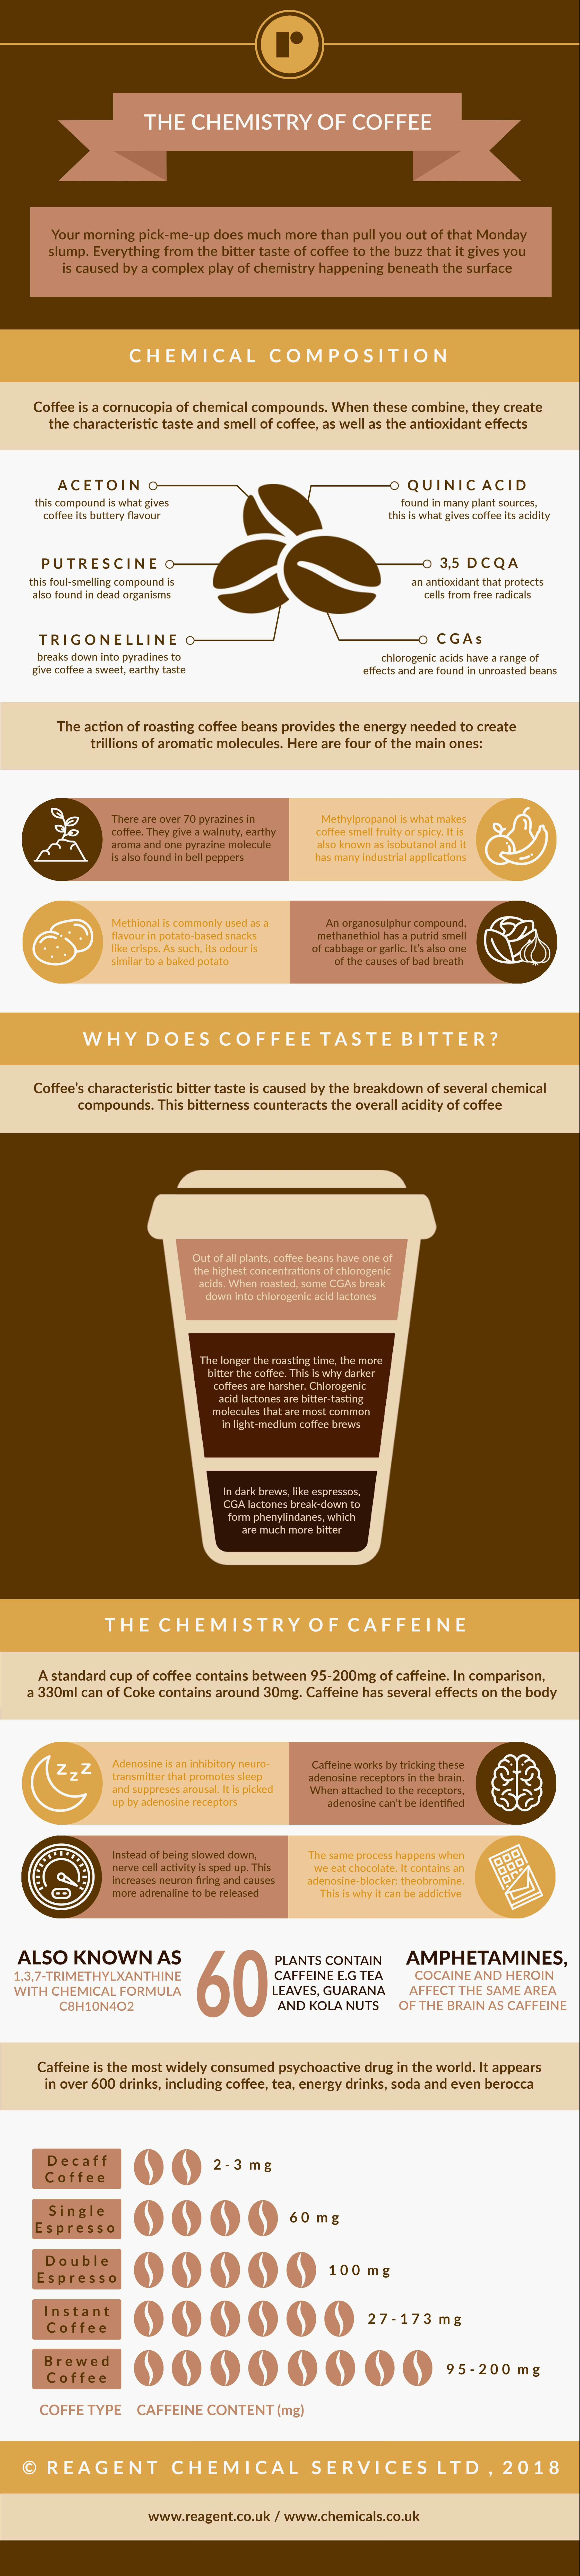 An infographic showing the chemistry of coffee